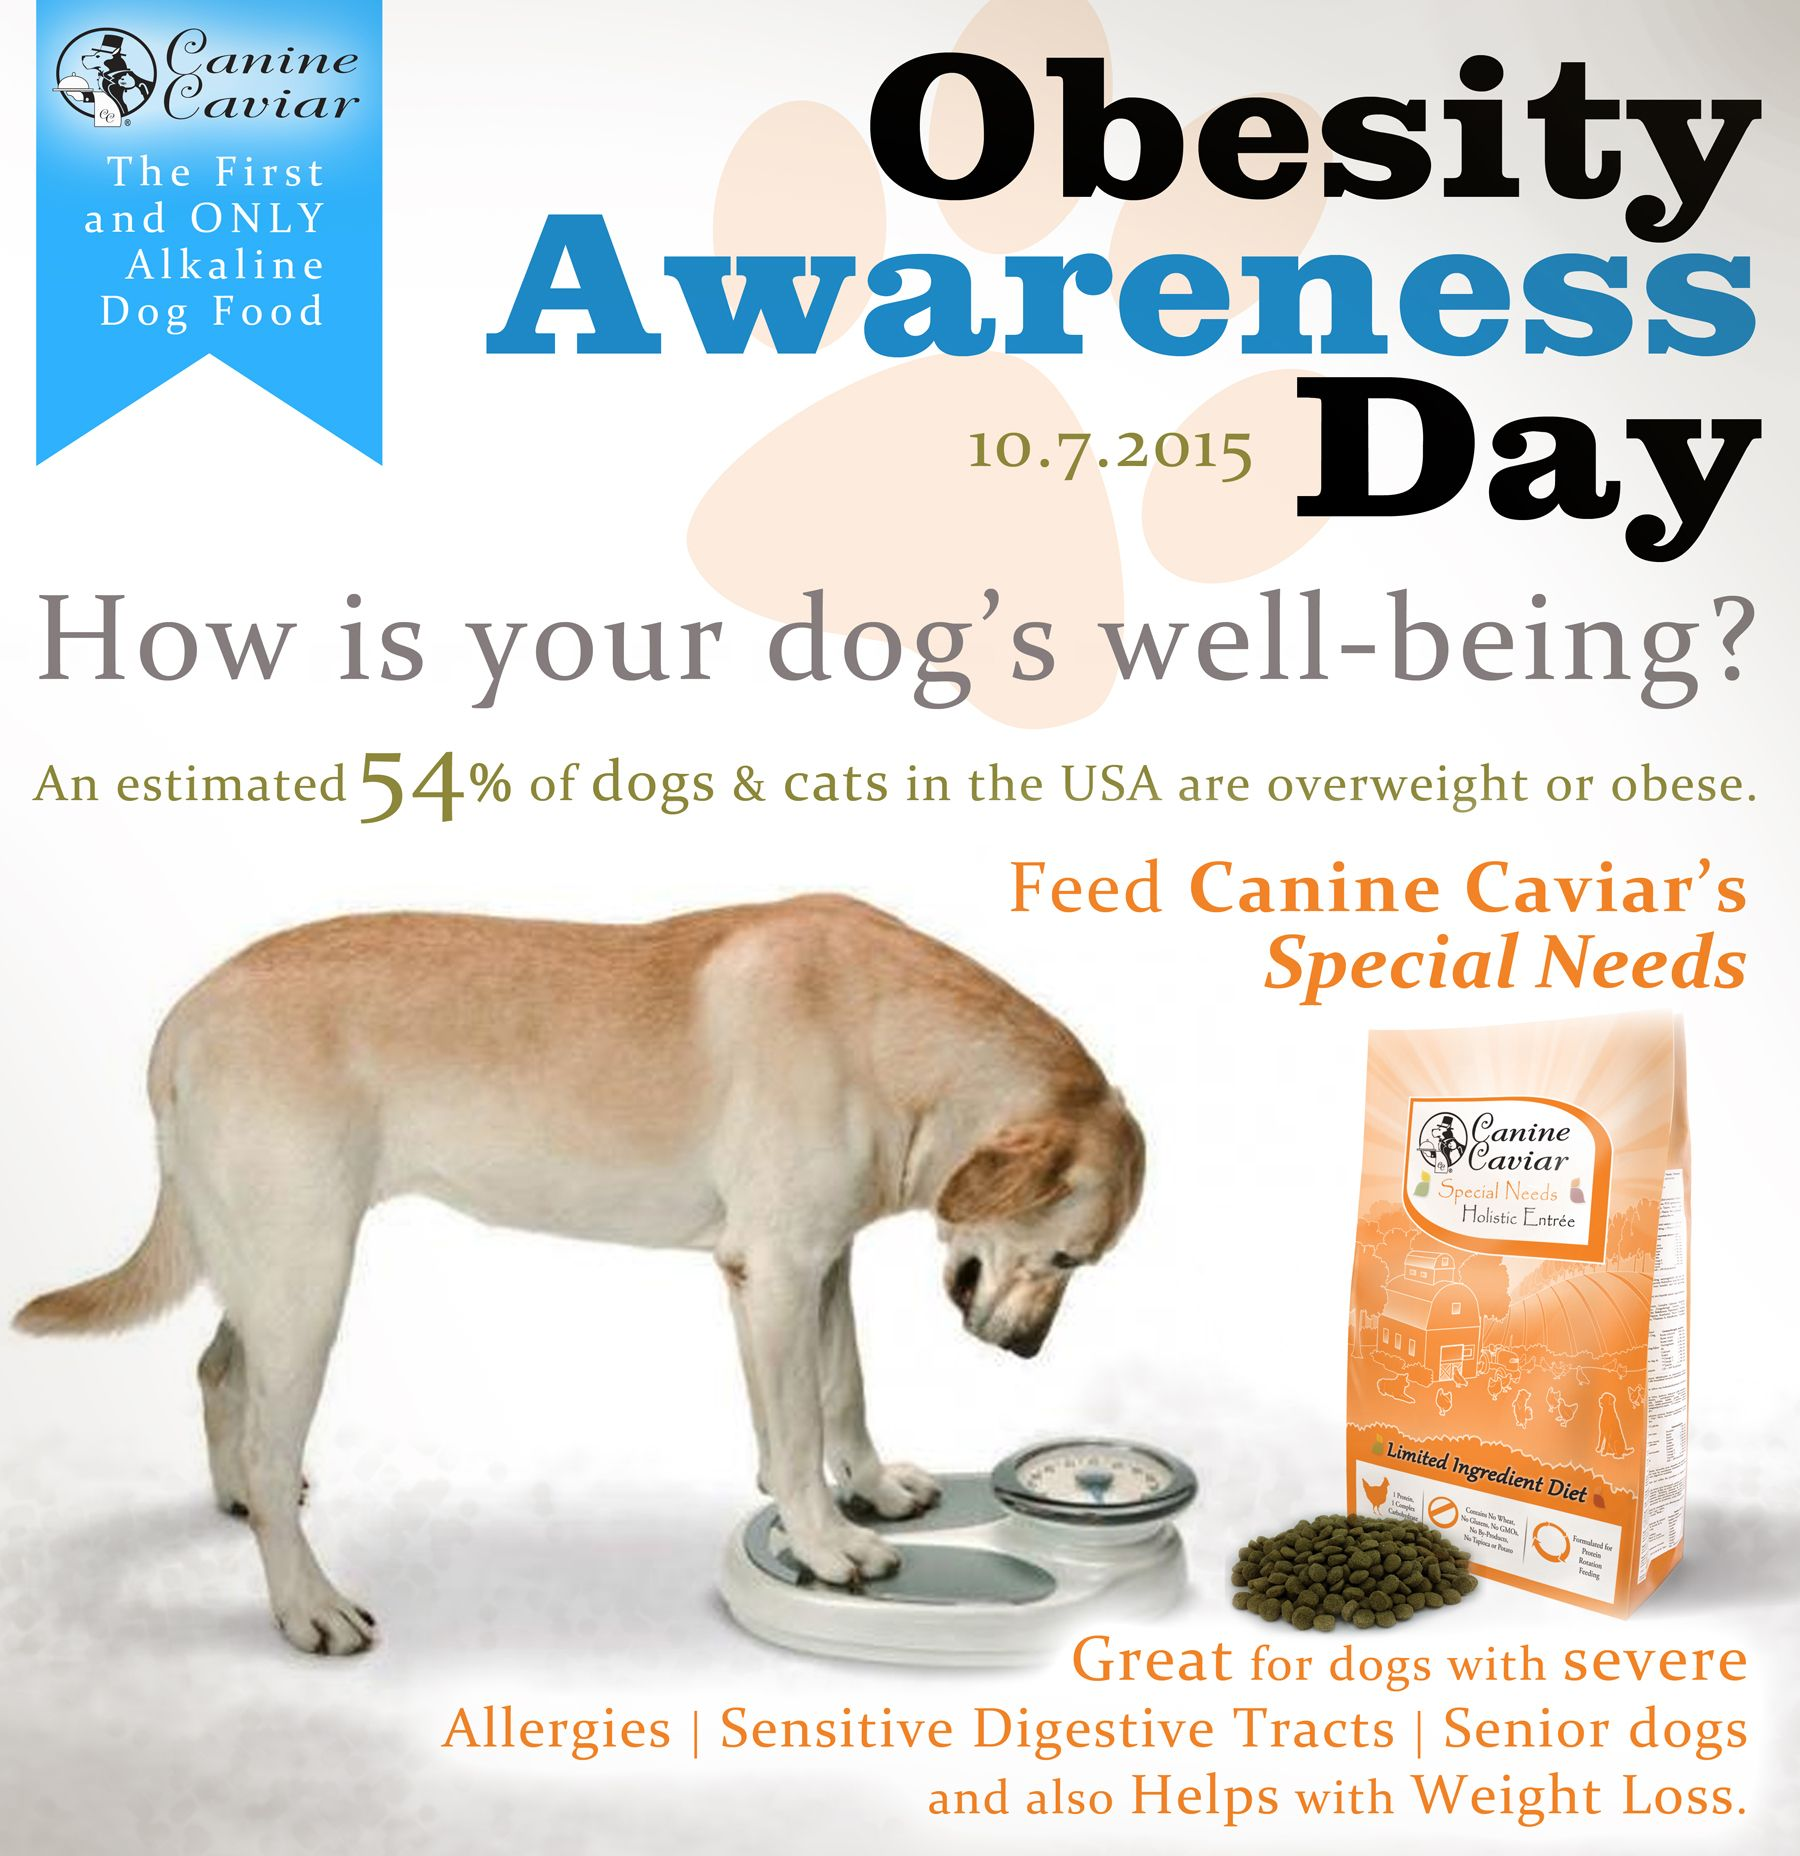 Canine Caviars Special Needs is formulated to help prevent